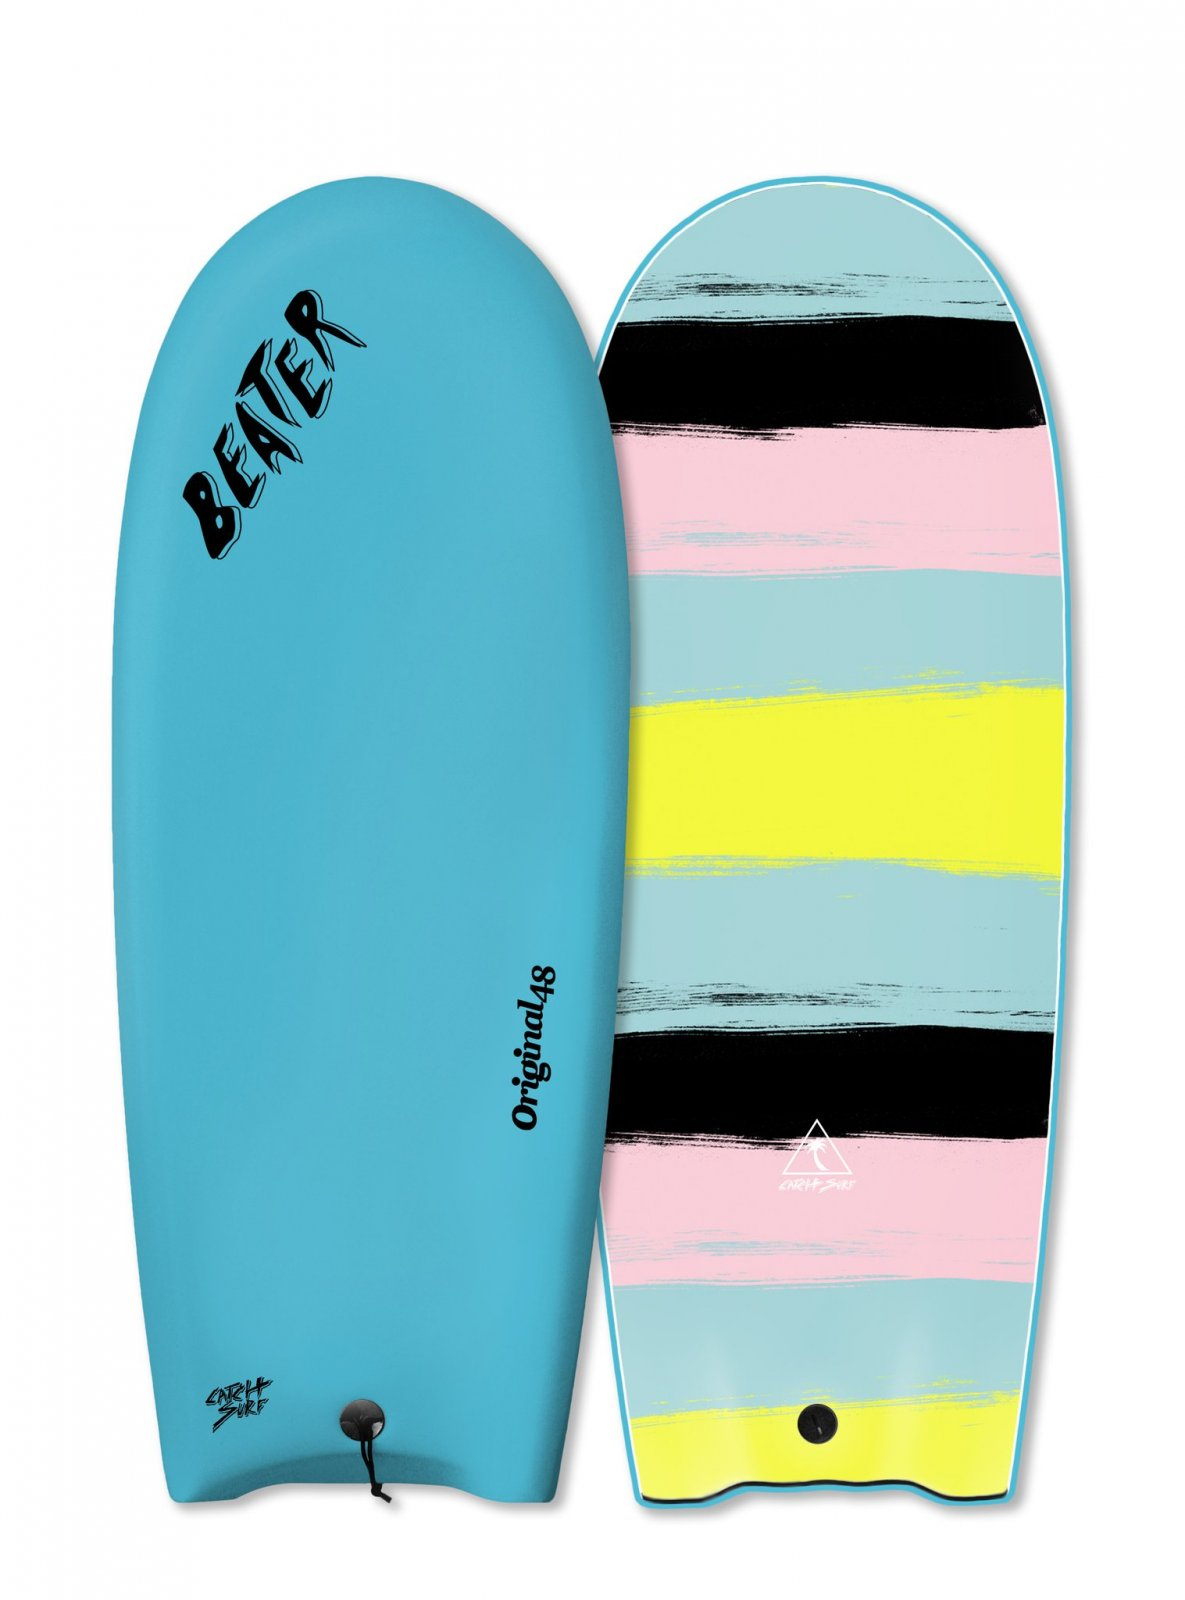 Catch Surf Beater Original 48 Finless '19